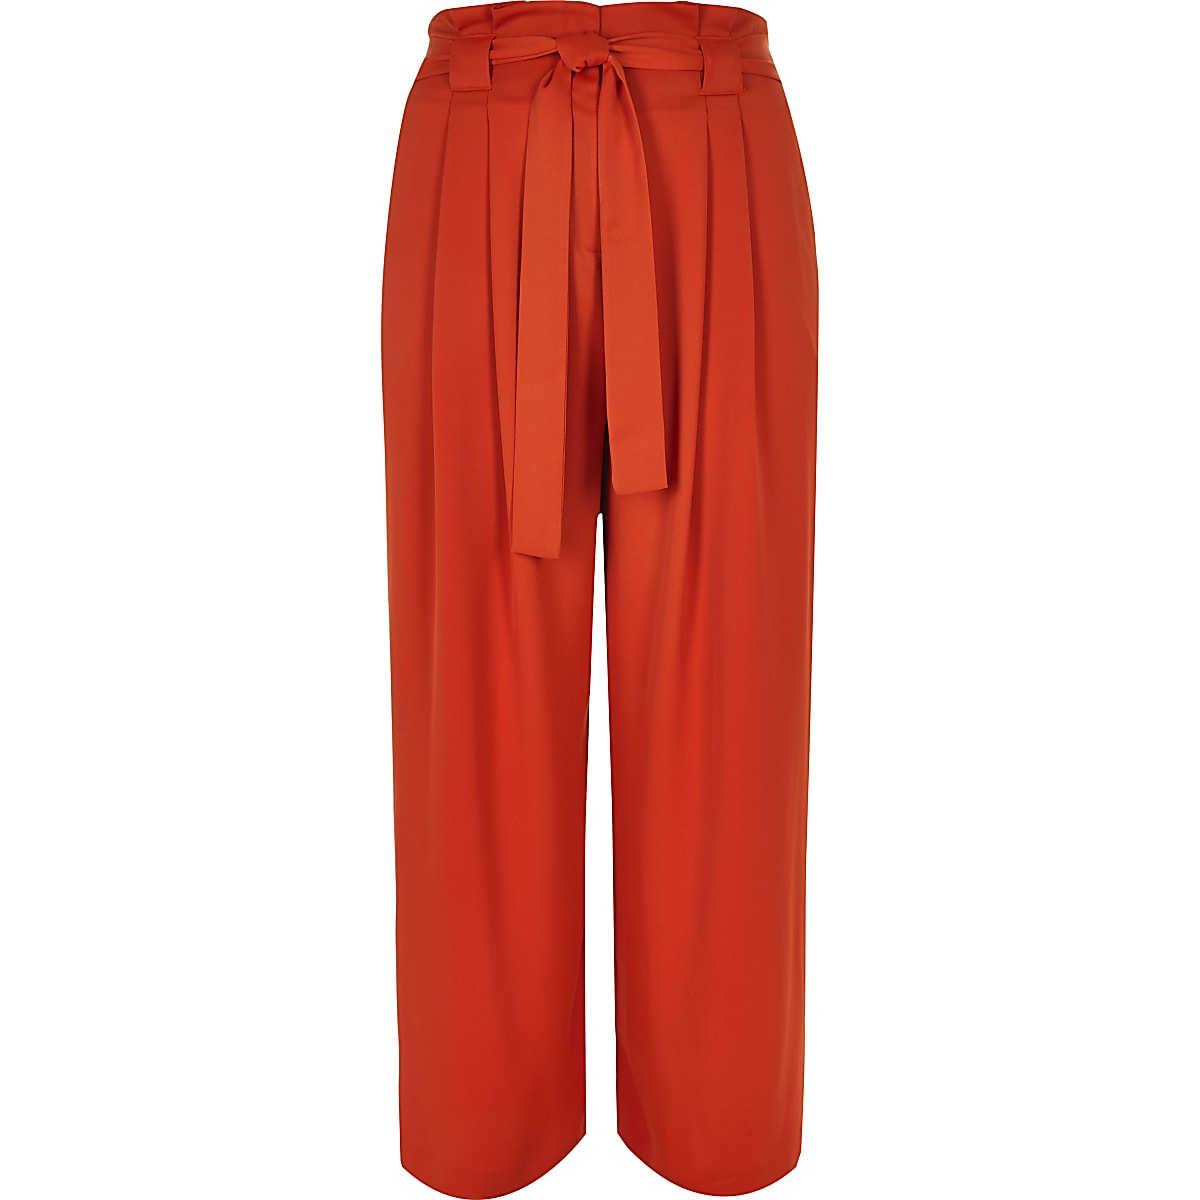 a760cd392c Plus red paperbag wide leg trousers - Wide Leg Trousers - Trousers ...